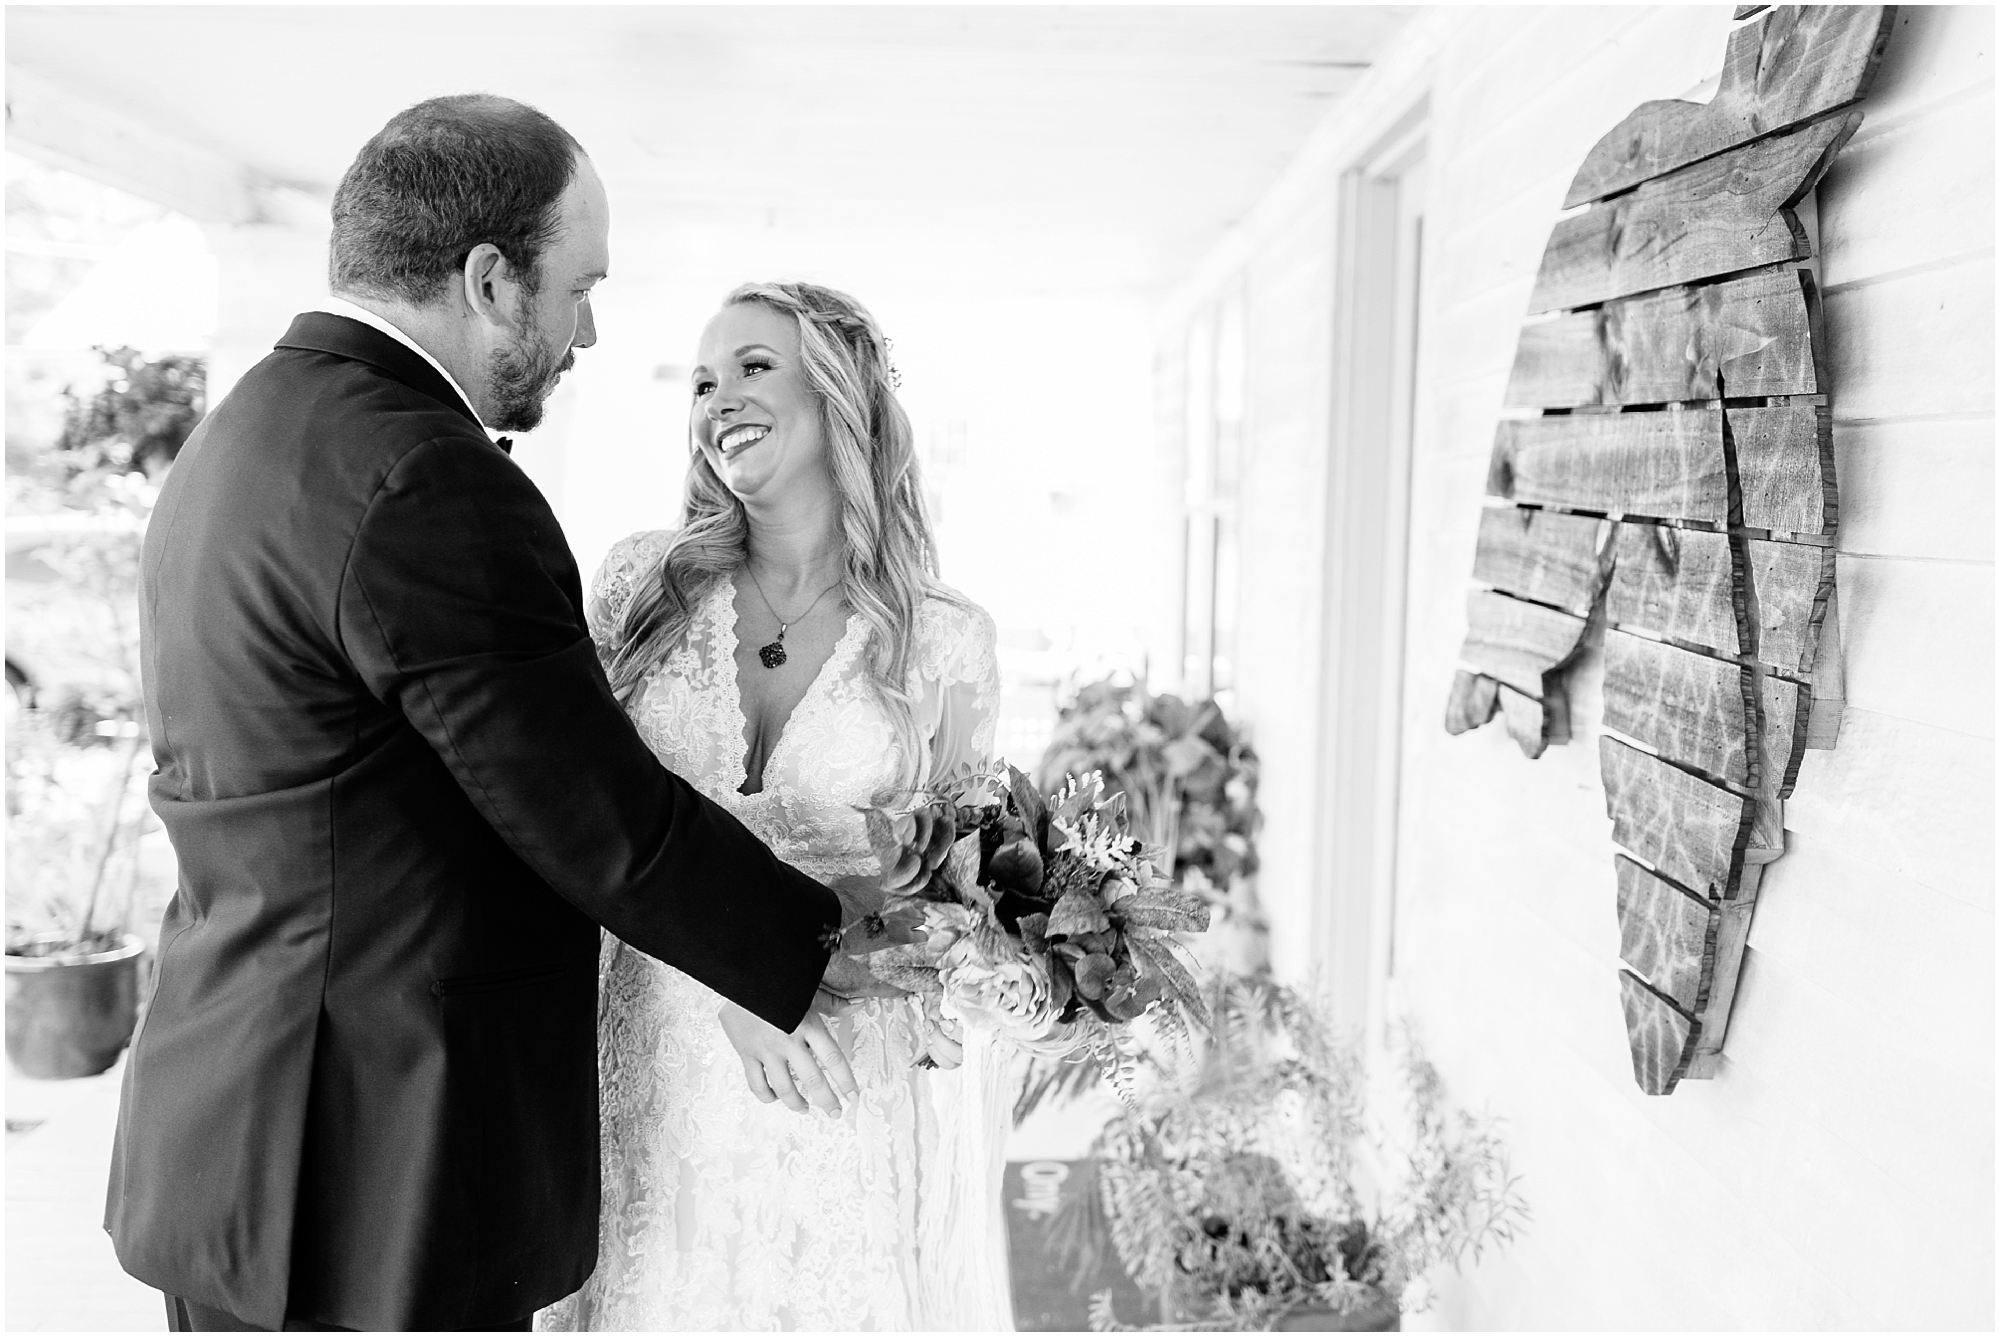 bride and groom first look portraits boho wedding at The Tar Roof virginia beach wedding photography jessica ryan photography